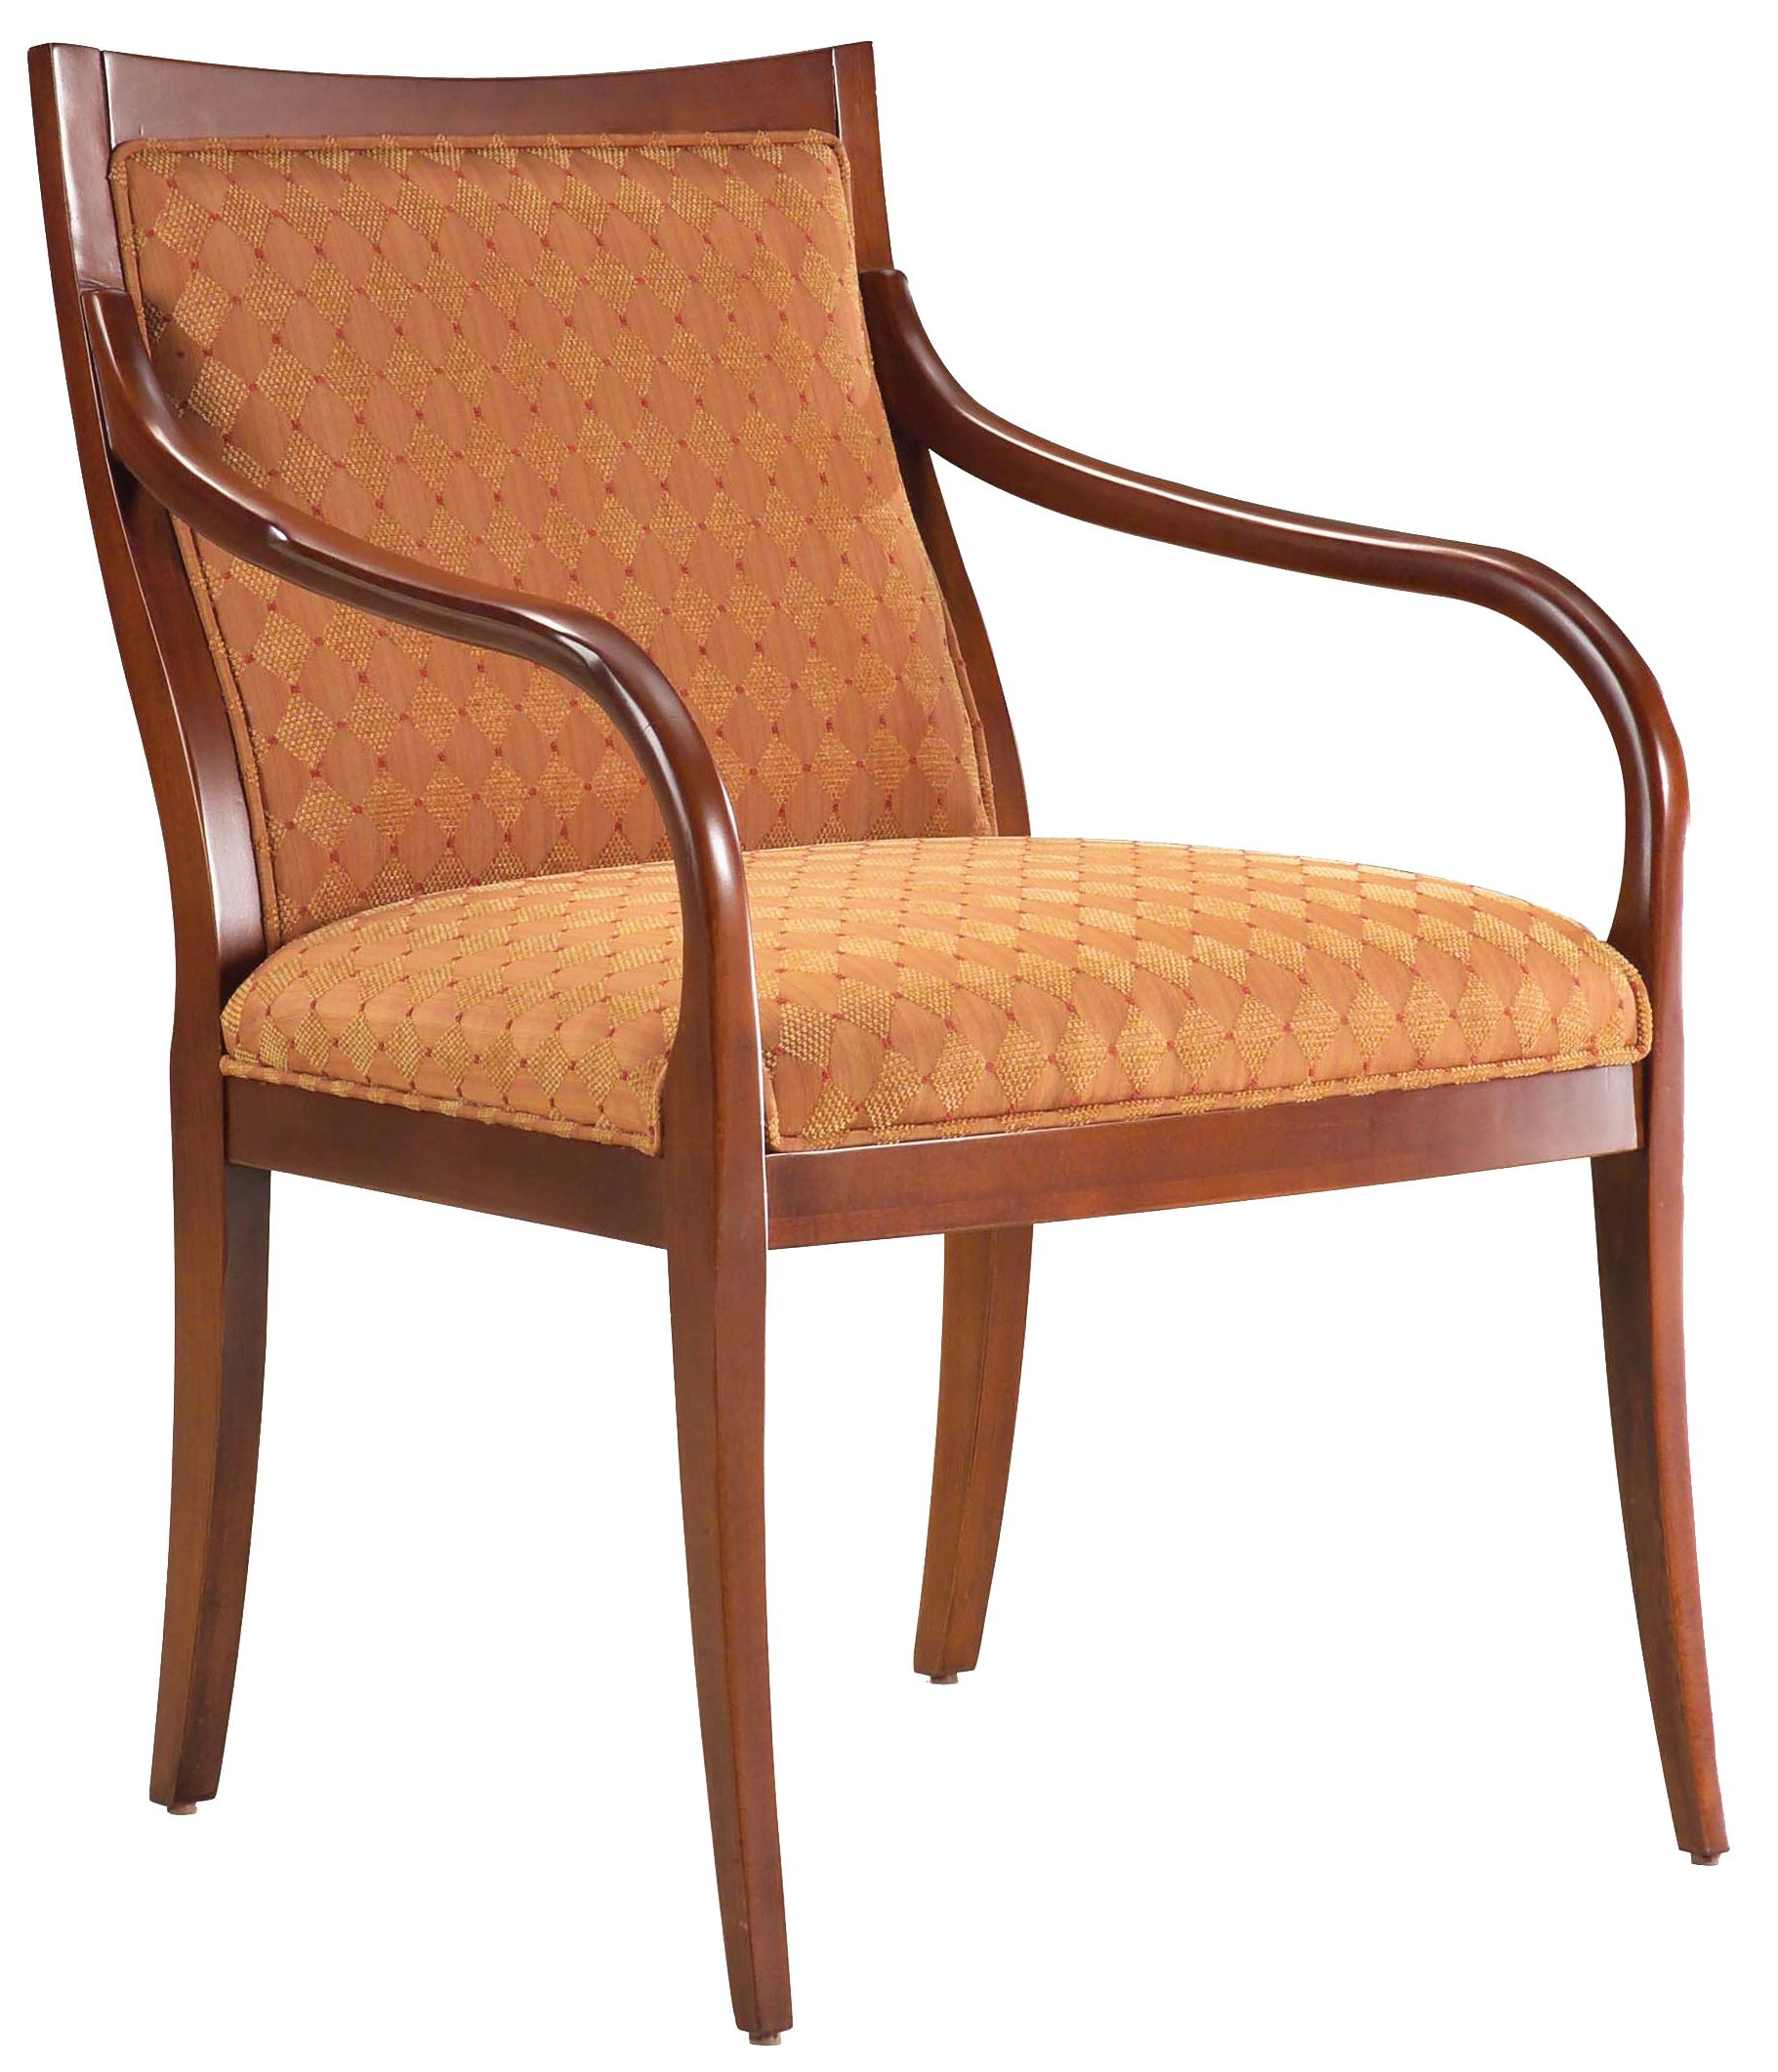 Fairfield Chairs Professional Occasional Chair - Item Number: 6006-01